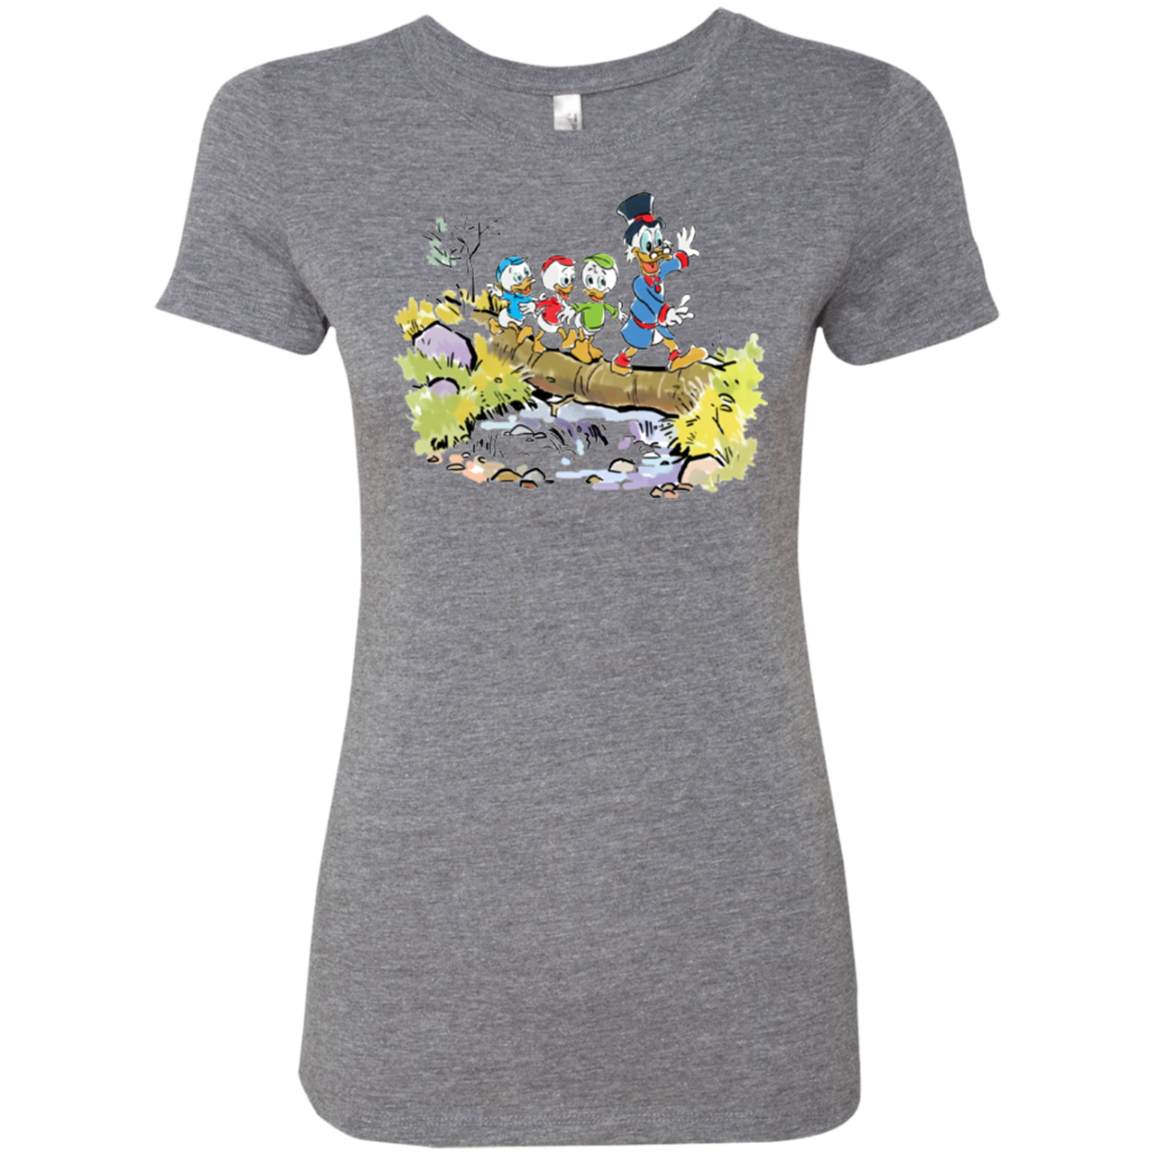 Looking for Adventure Women's Triblend T-Shirt